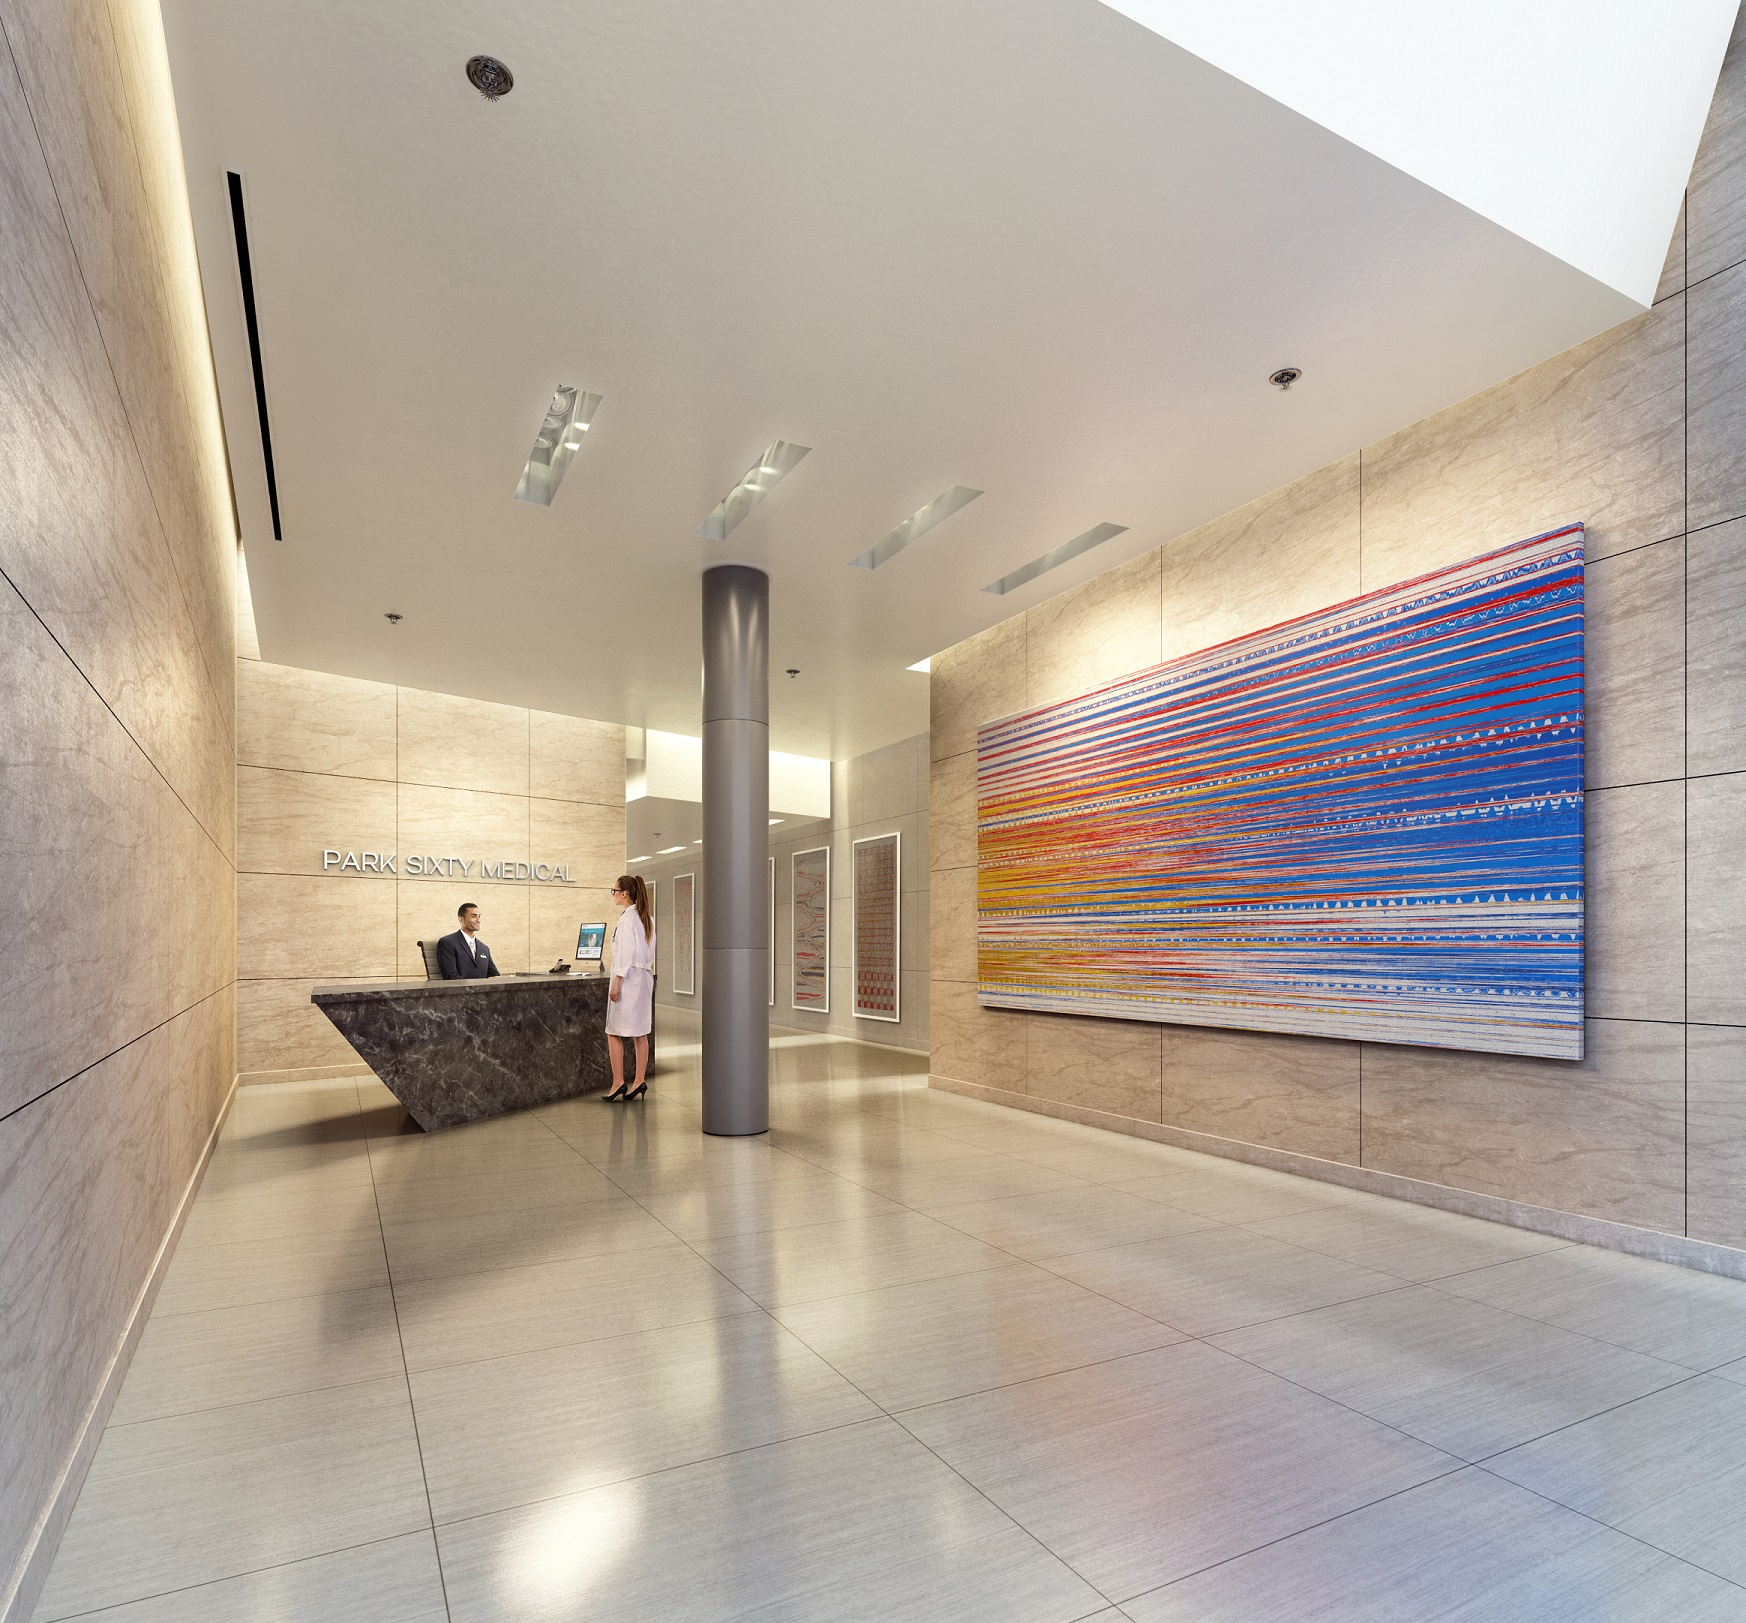 Rendering of the lobby of Park Sixty Medical located at 110 East 60th Street with MEP engineering services provided by 2L Engineering